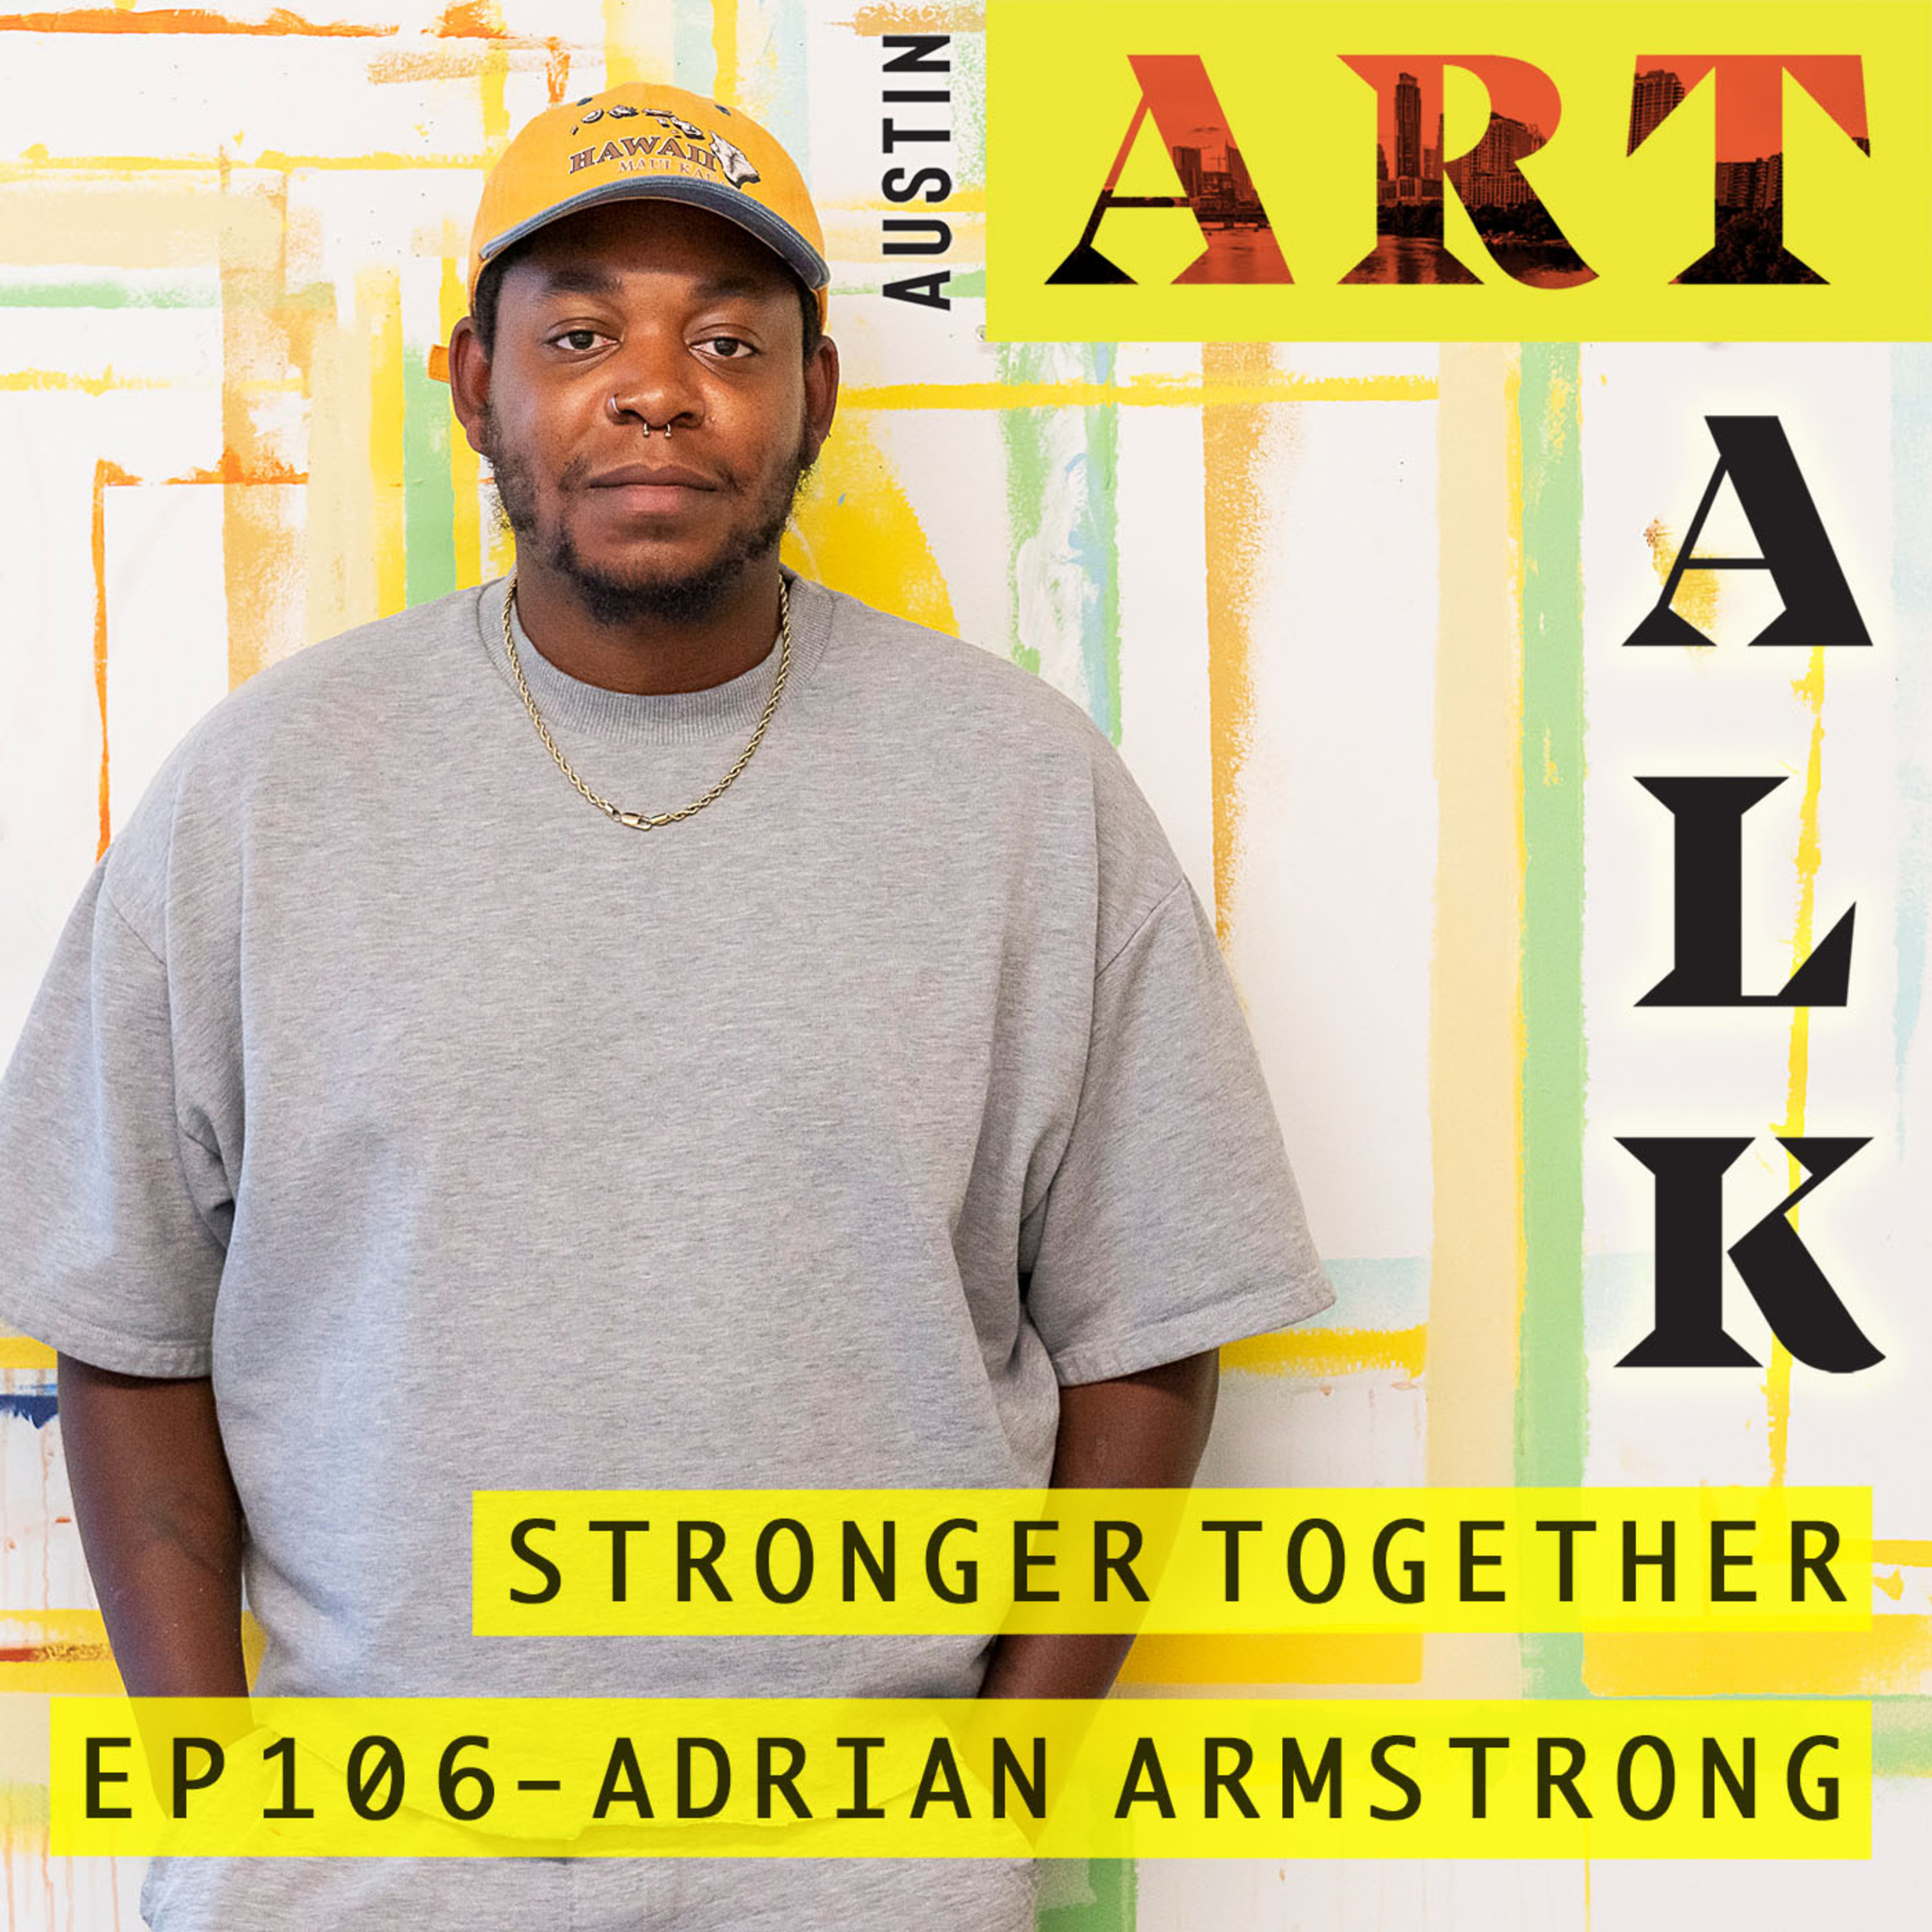 Episode 106: Adrian Armstrong - Stronger Together